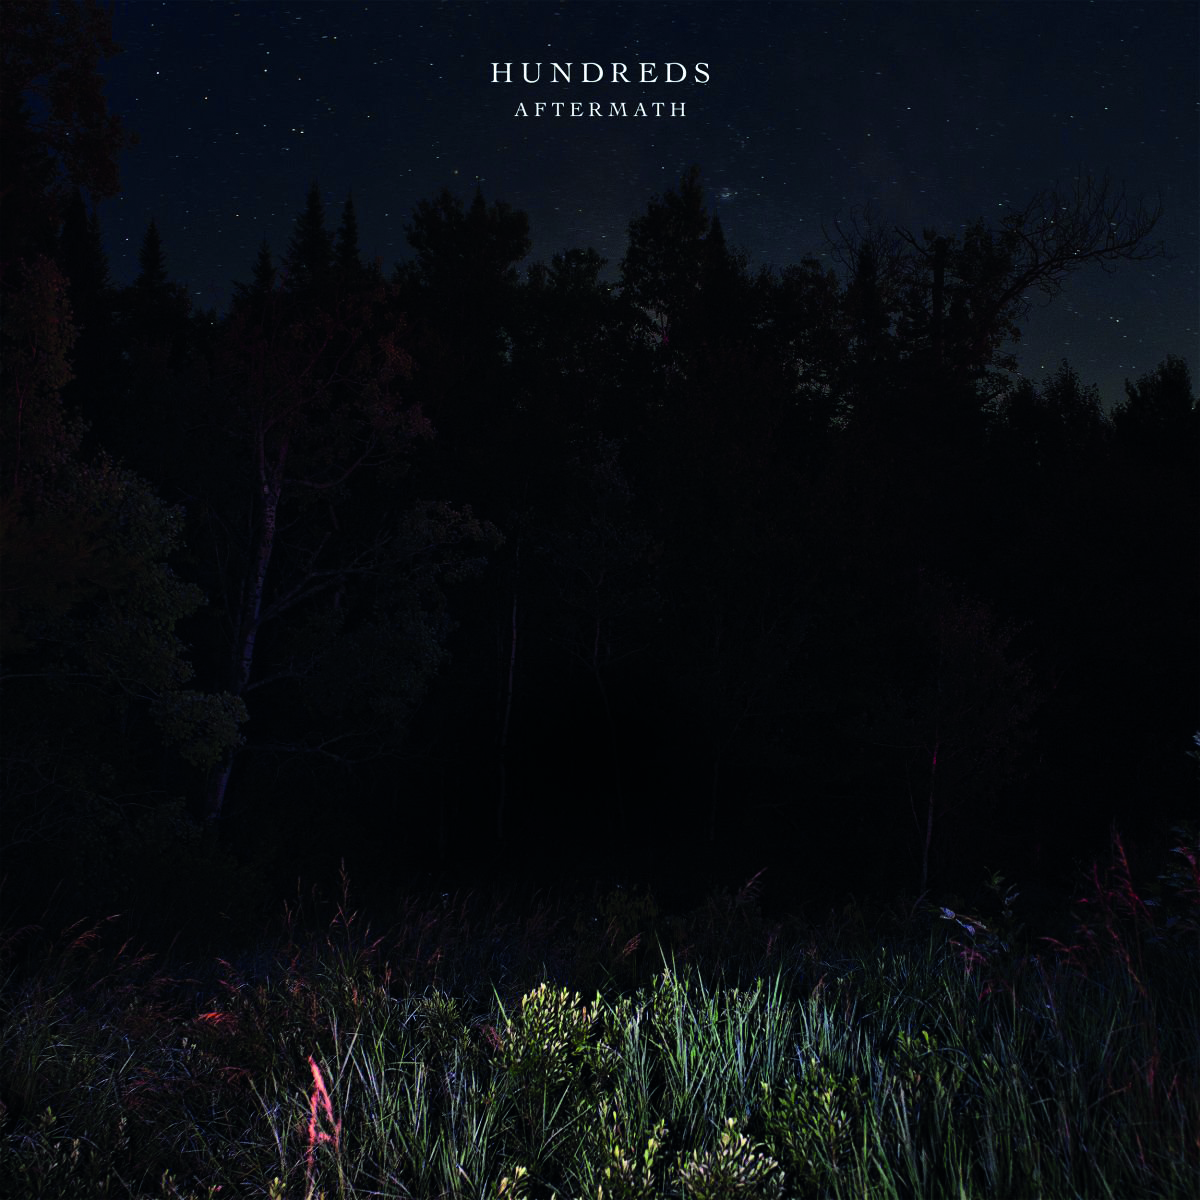 Hundreds – Aftermath (Sinnbus/Rough Trade)